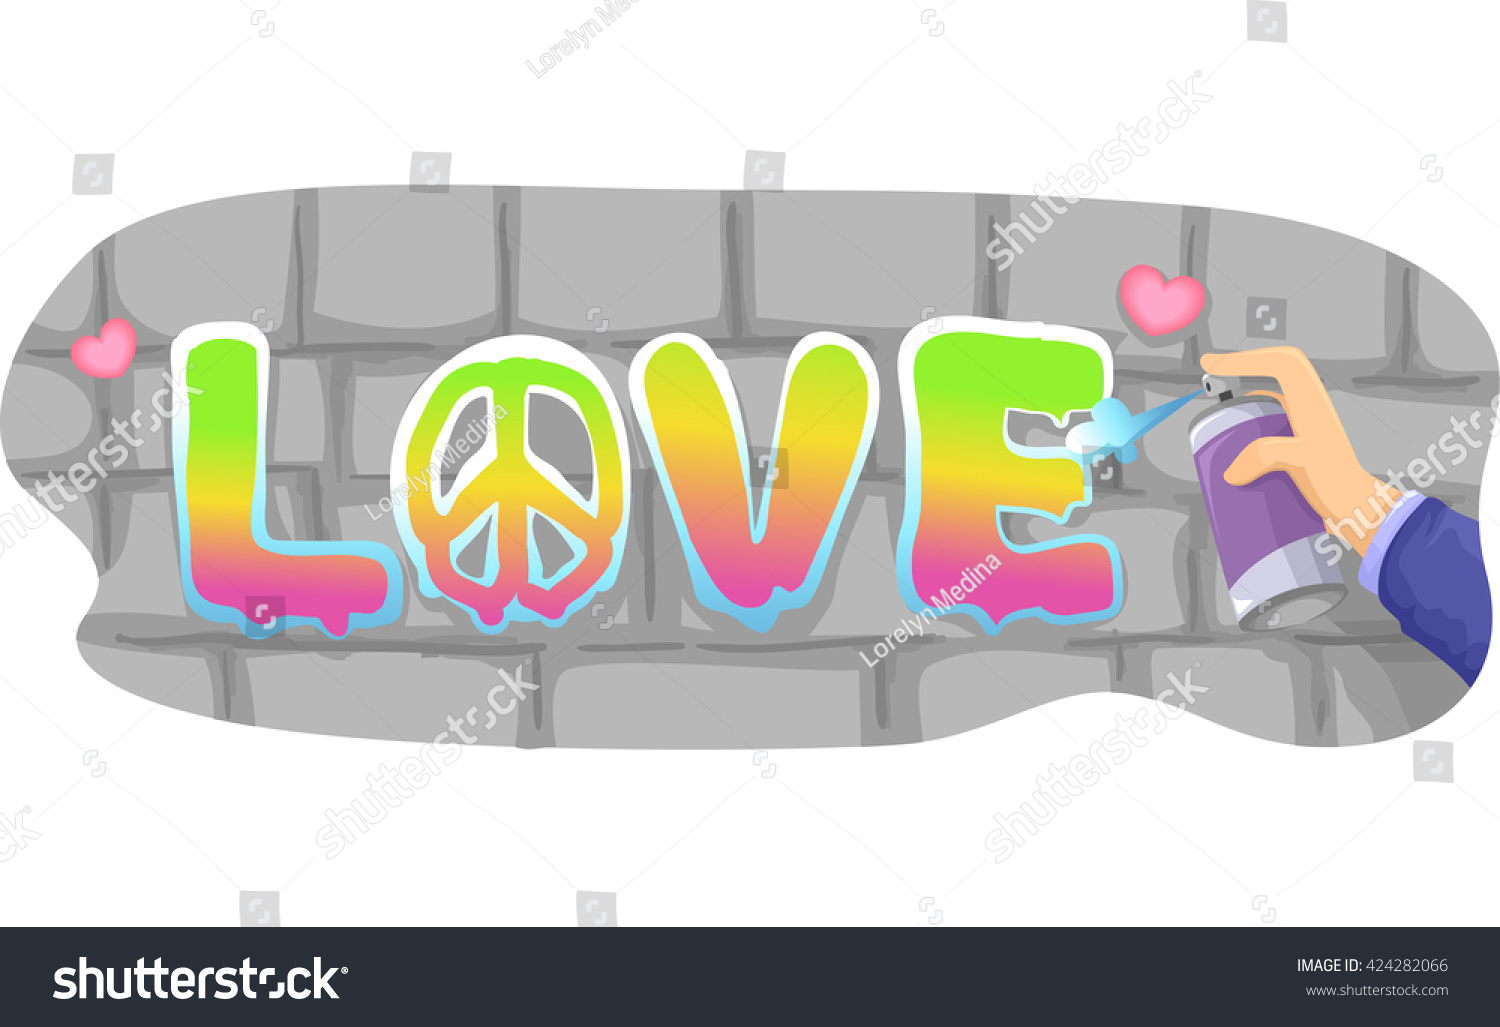 Illustration man spray painting word love stock vector 424282066 illustration of a man spray painting the word love ccuart Image collections